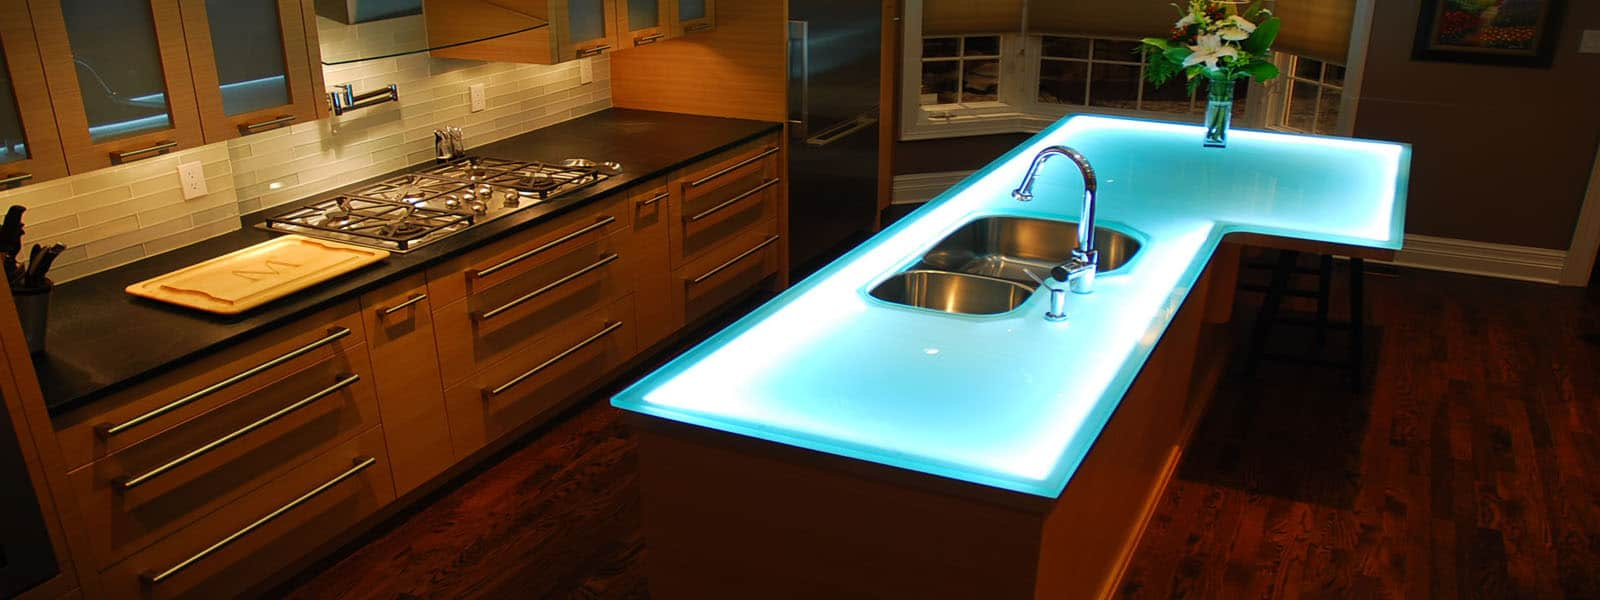 Lightweight Kitchen Countertops